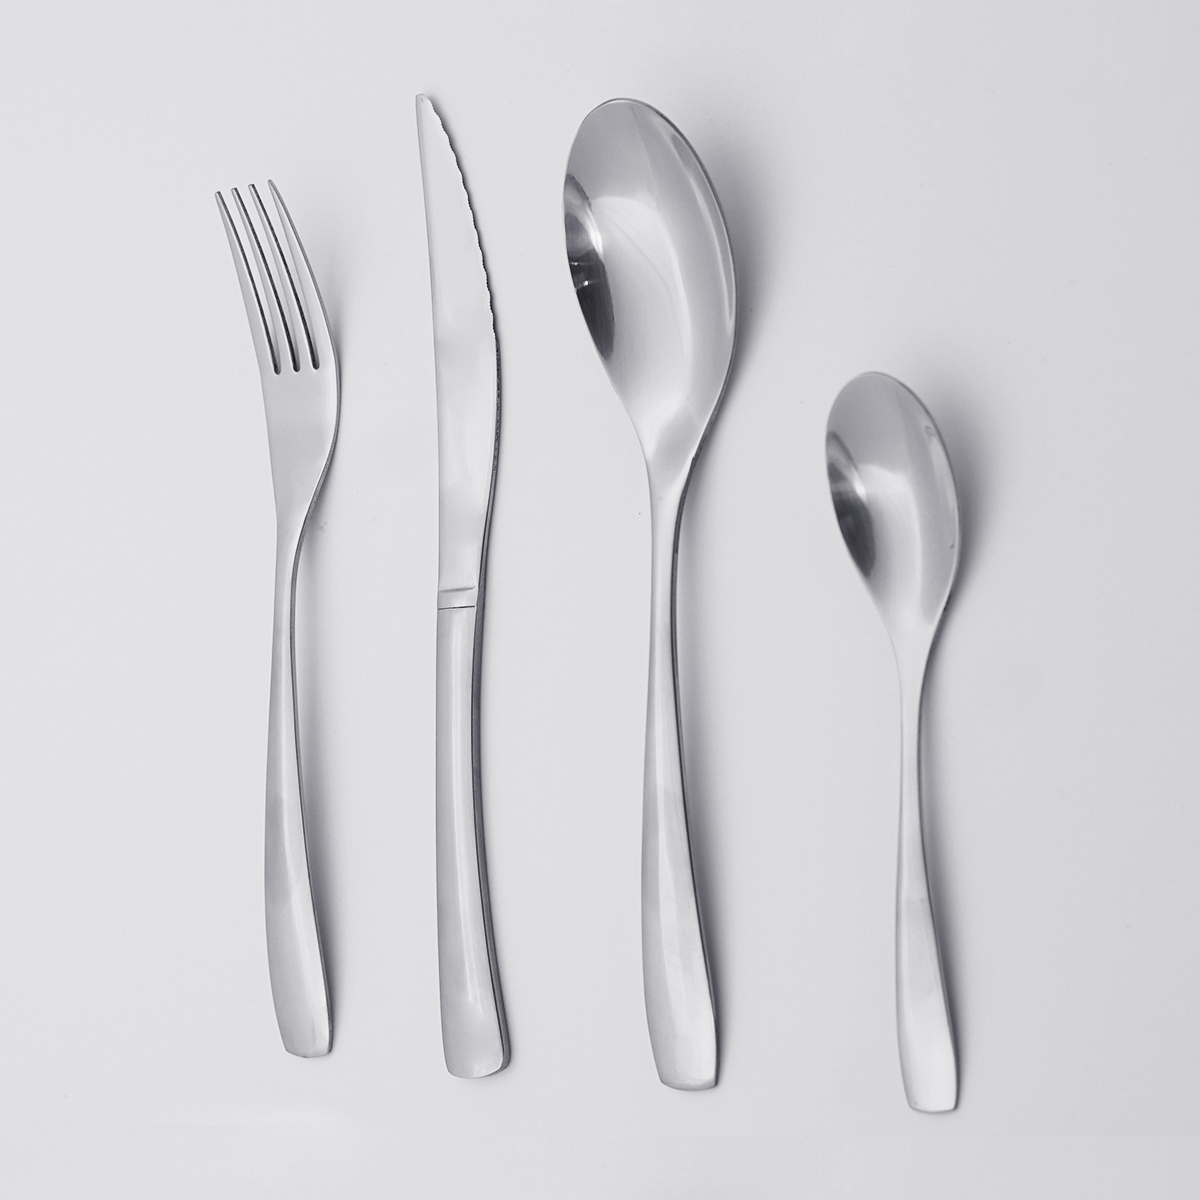 Factory Wholesale Good Quality Cheap Price Silverware Flatware Reusable Cutlery 18/8 Stainless Steel Cutelery Set